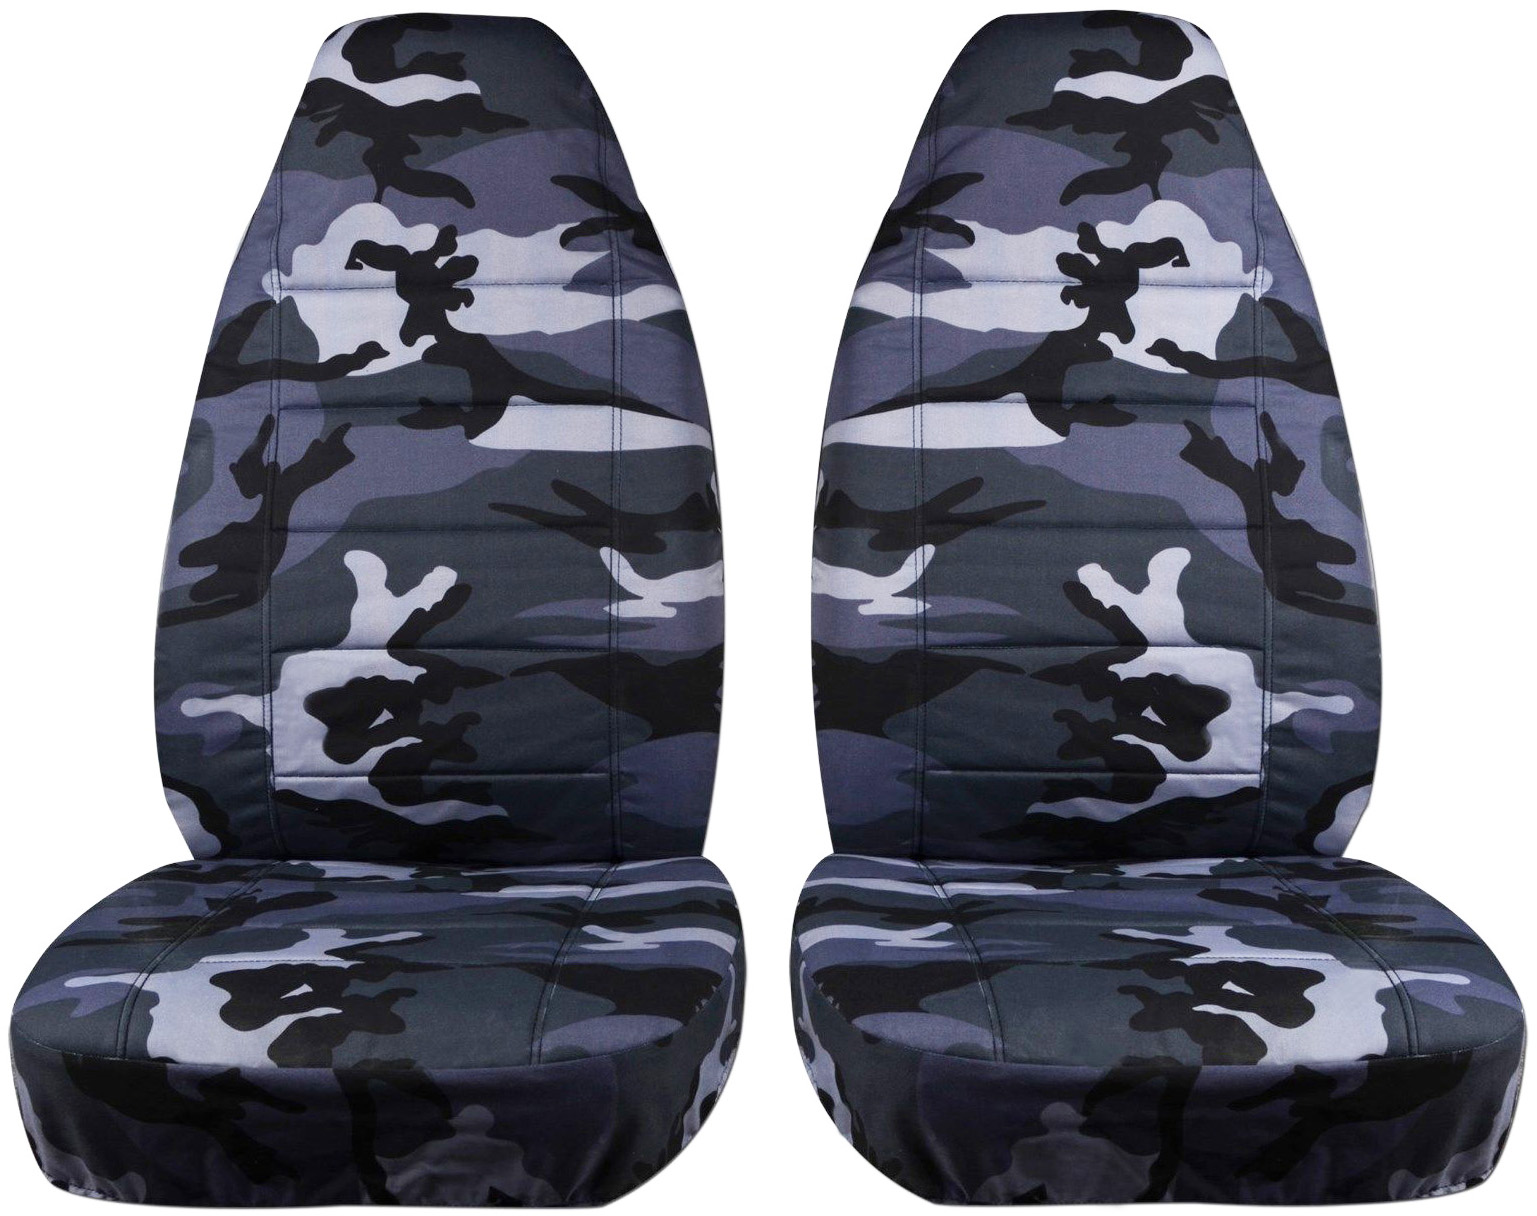 Camo Back Seat Covers For Cars